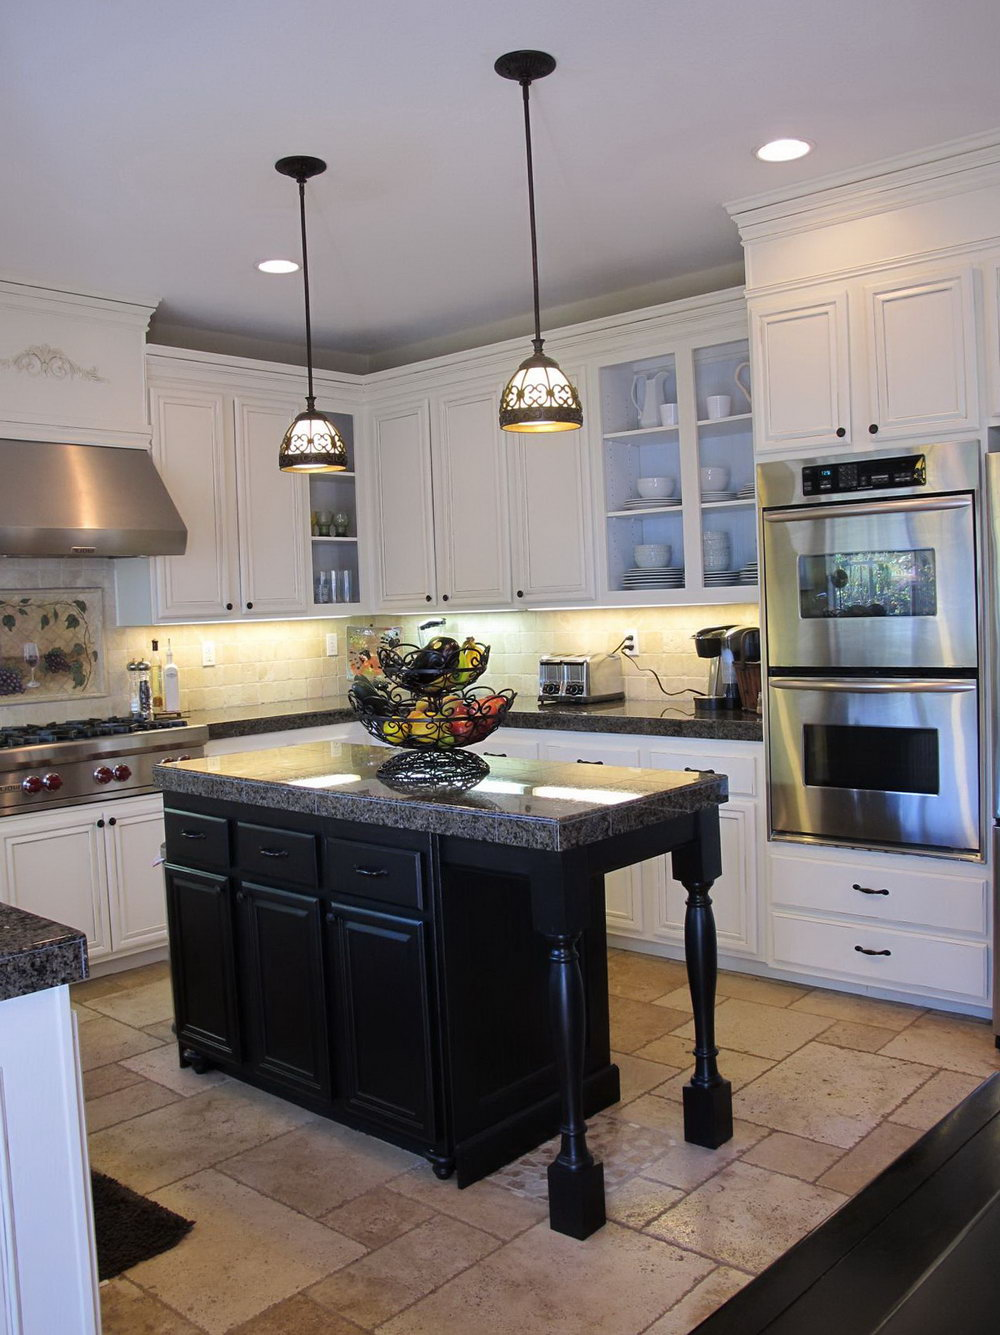 How To Paint My Kitchen Cabinets Black